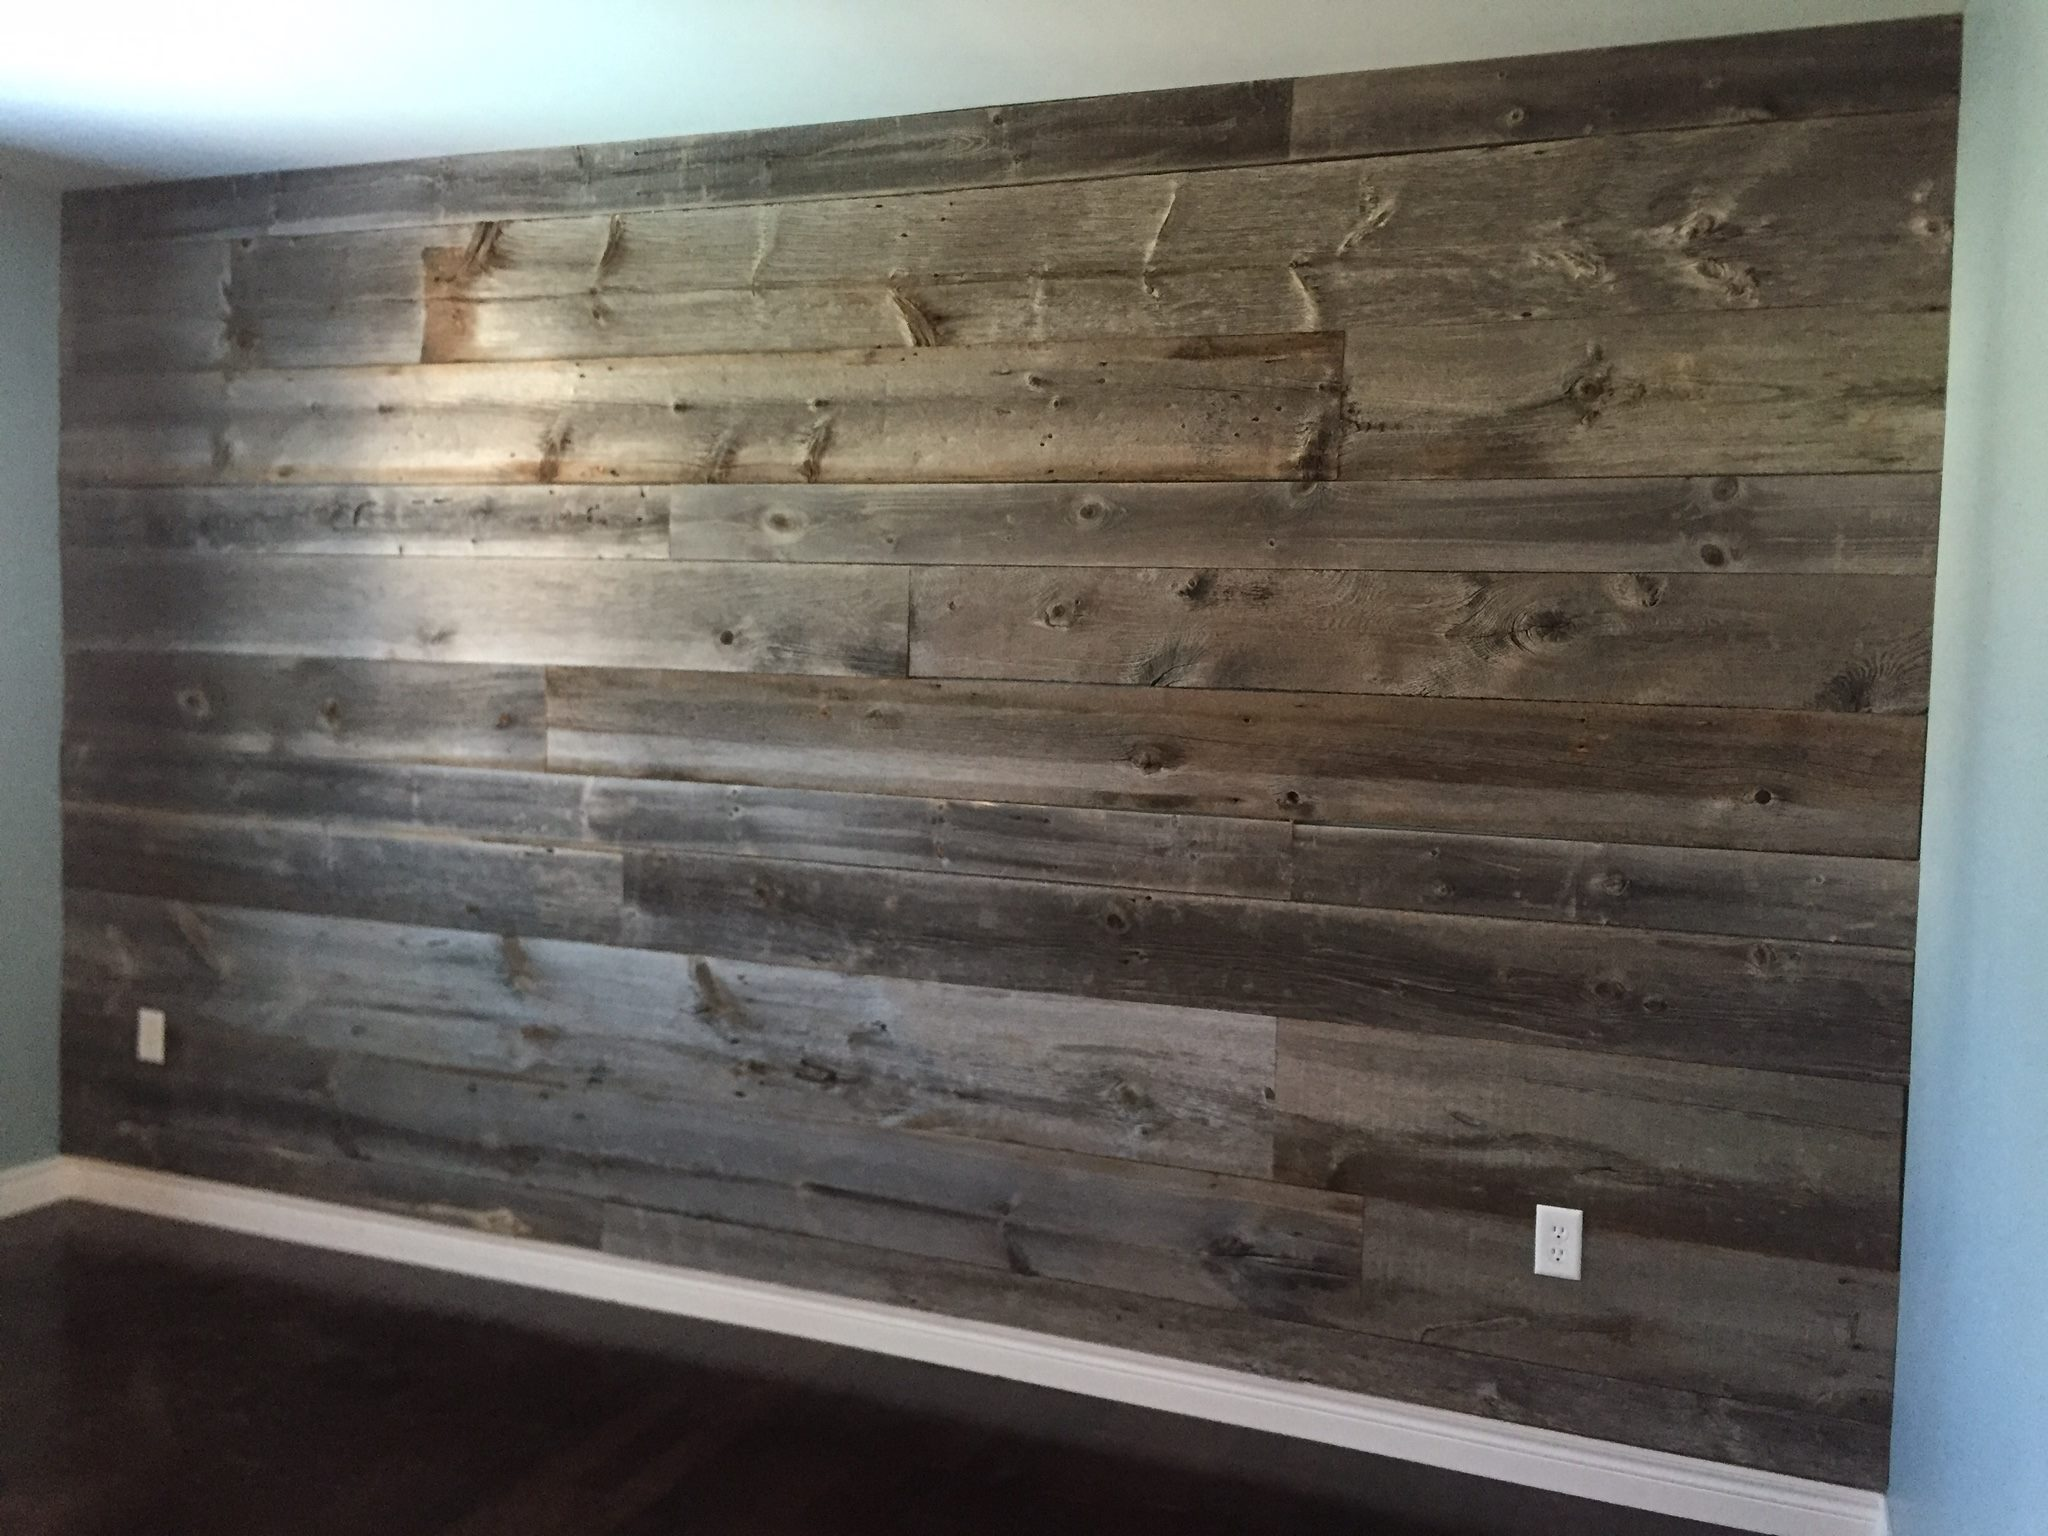 case color barn paneling p in wood interior ft wall barns walls for sq decorative trend holey gray adds new design x planks